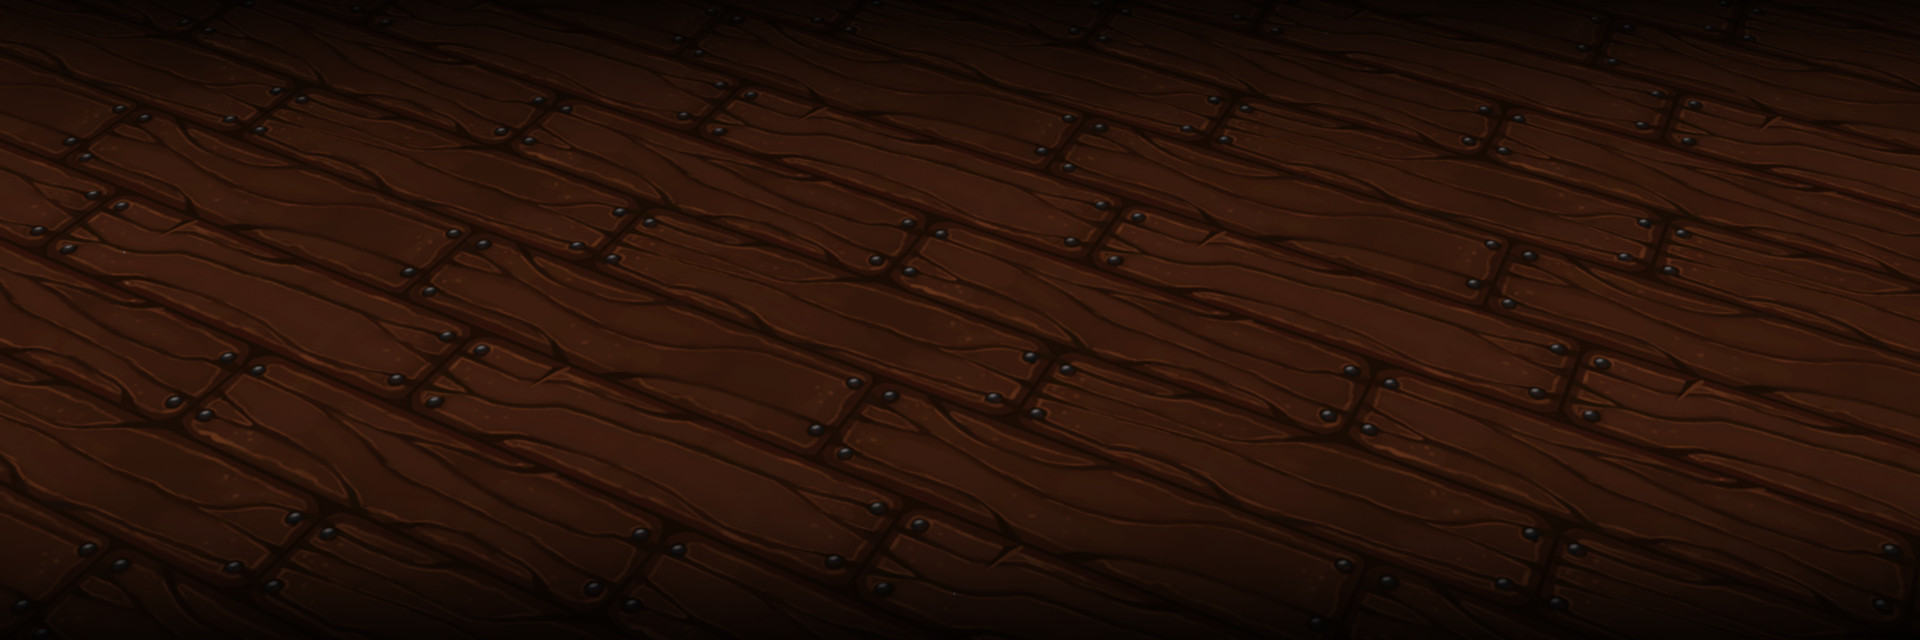 Chris sidgwick hand painted tiling wood floor texture chris sidgwick artstationbanner dailygadgetfo Image collections